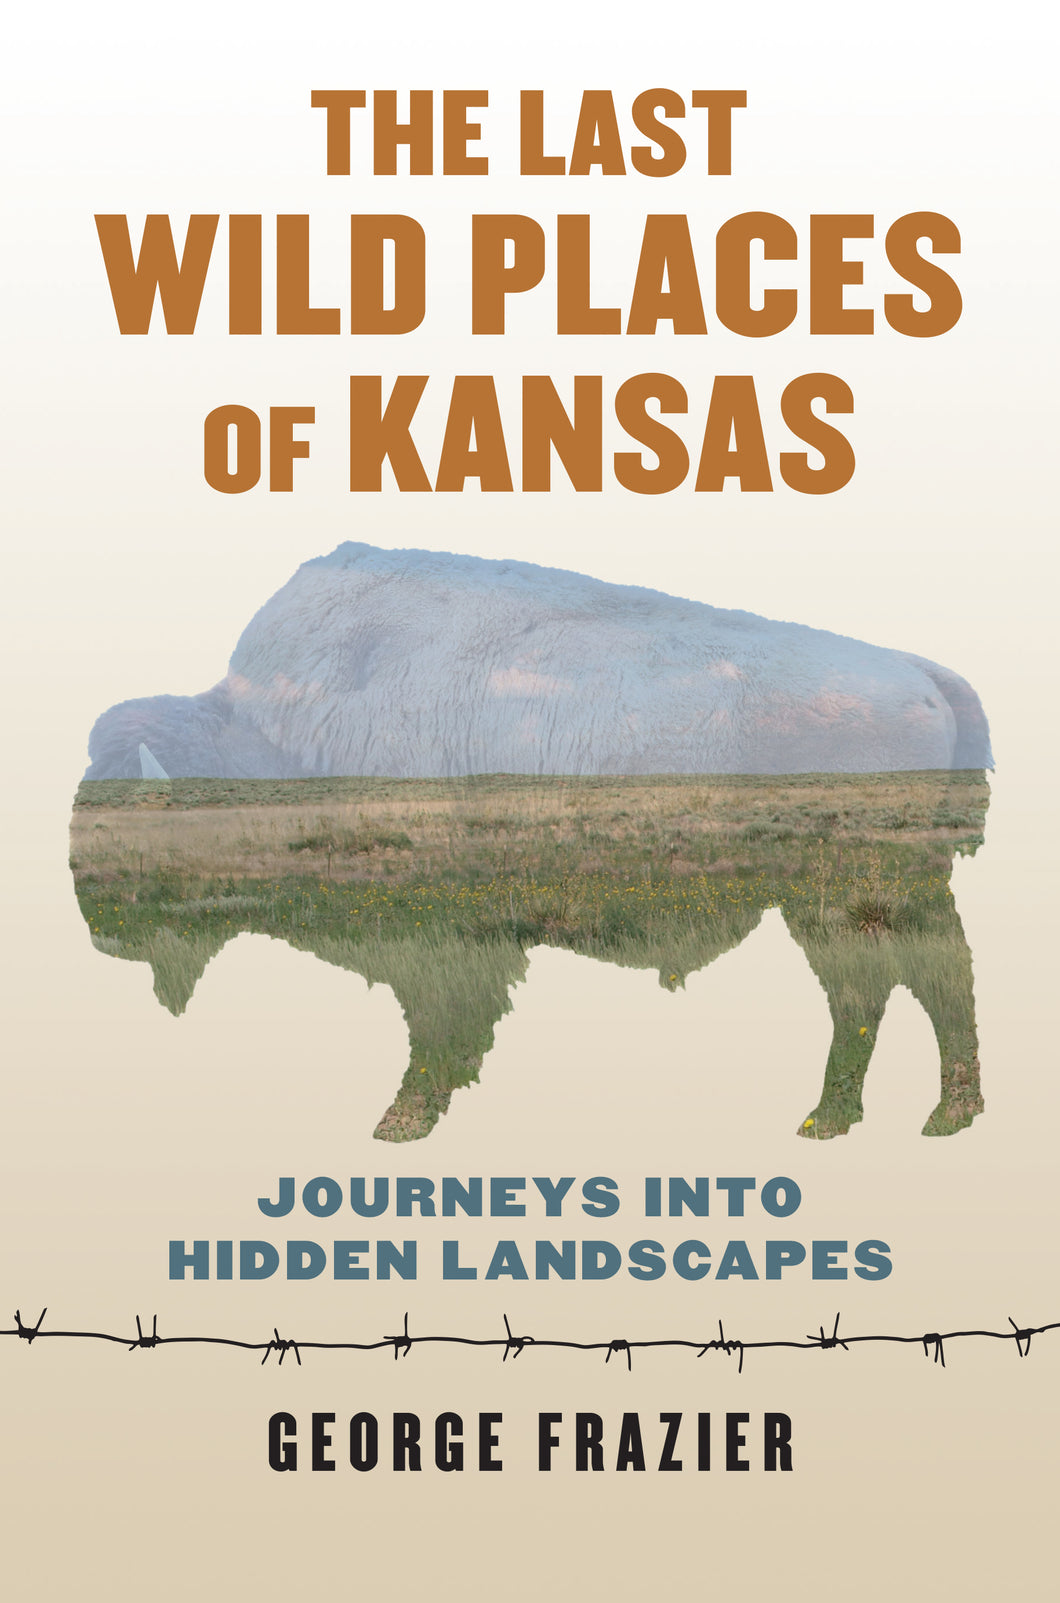 The Last Wild Places of Kansas - Journeys into Hidden Landscapes